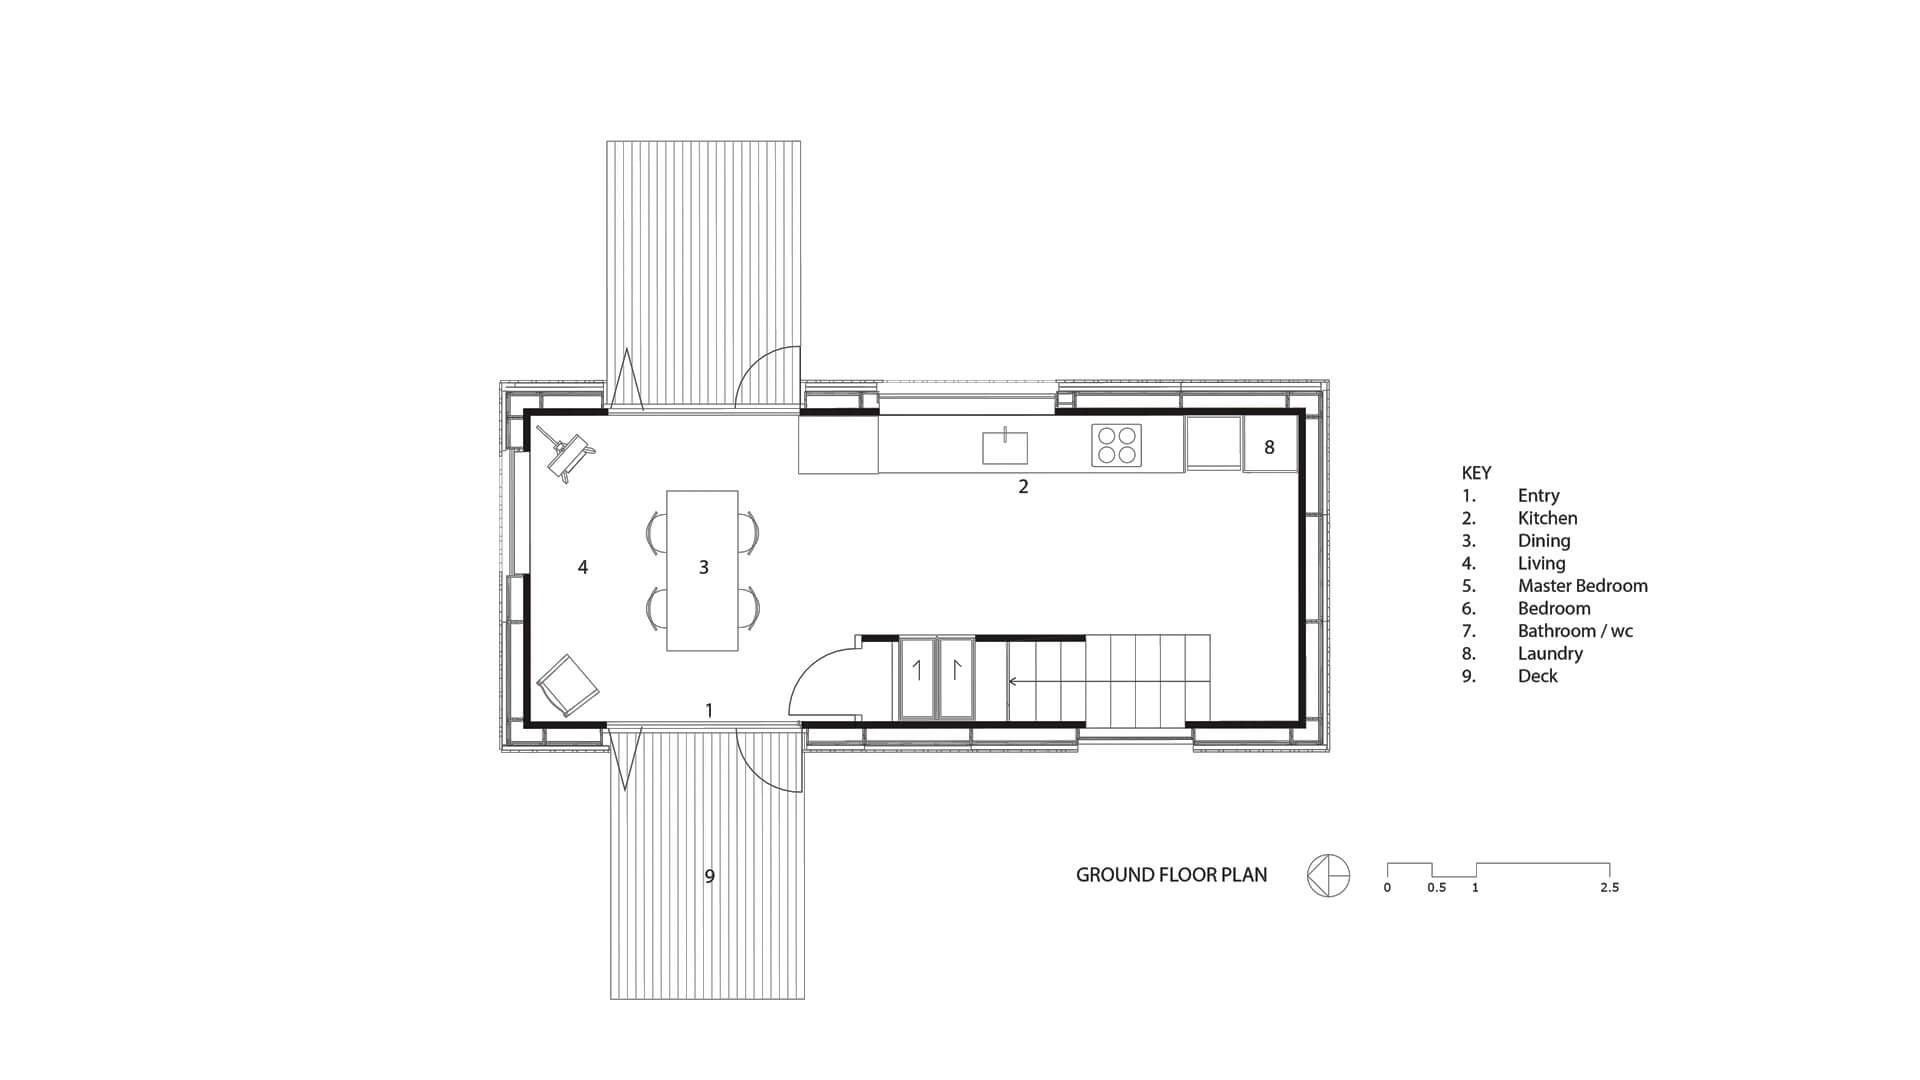 Warrander_Studio_Plans_2014_GF_Web